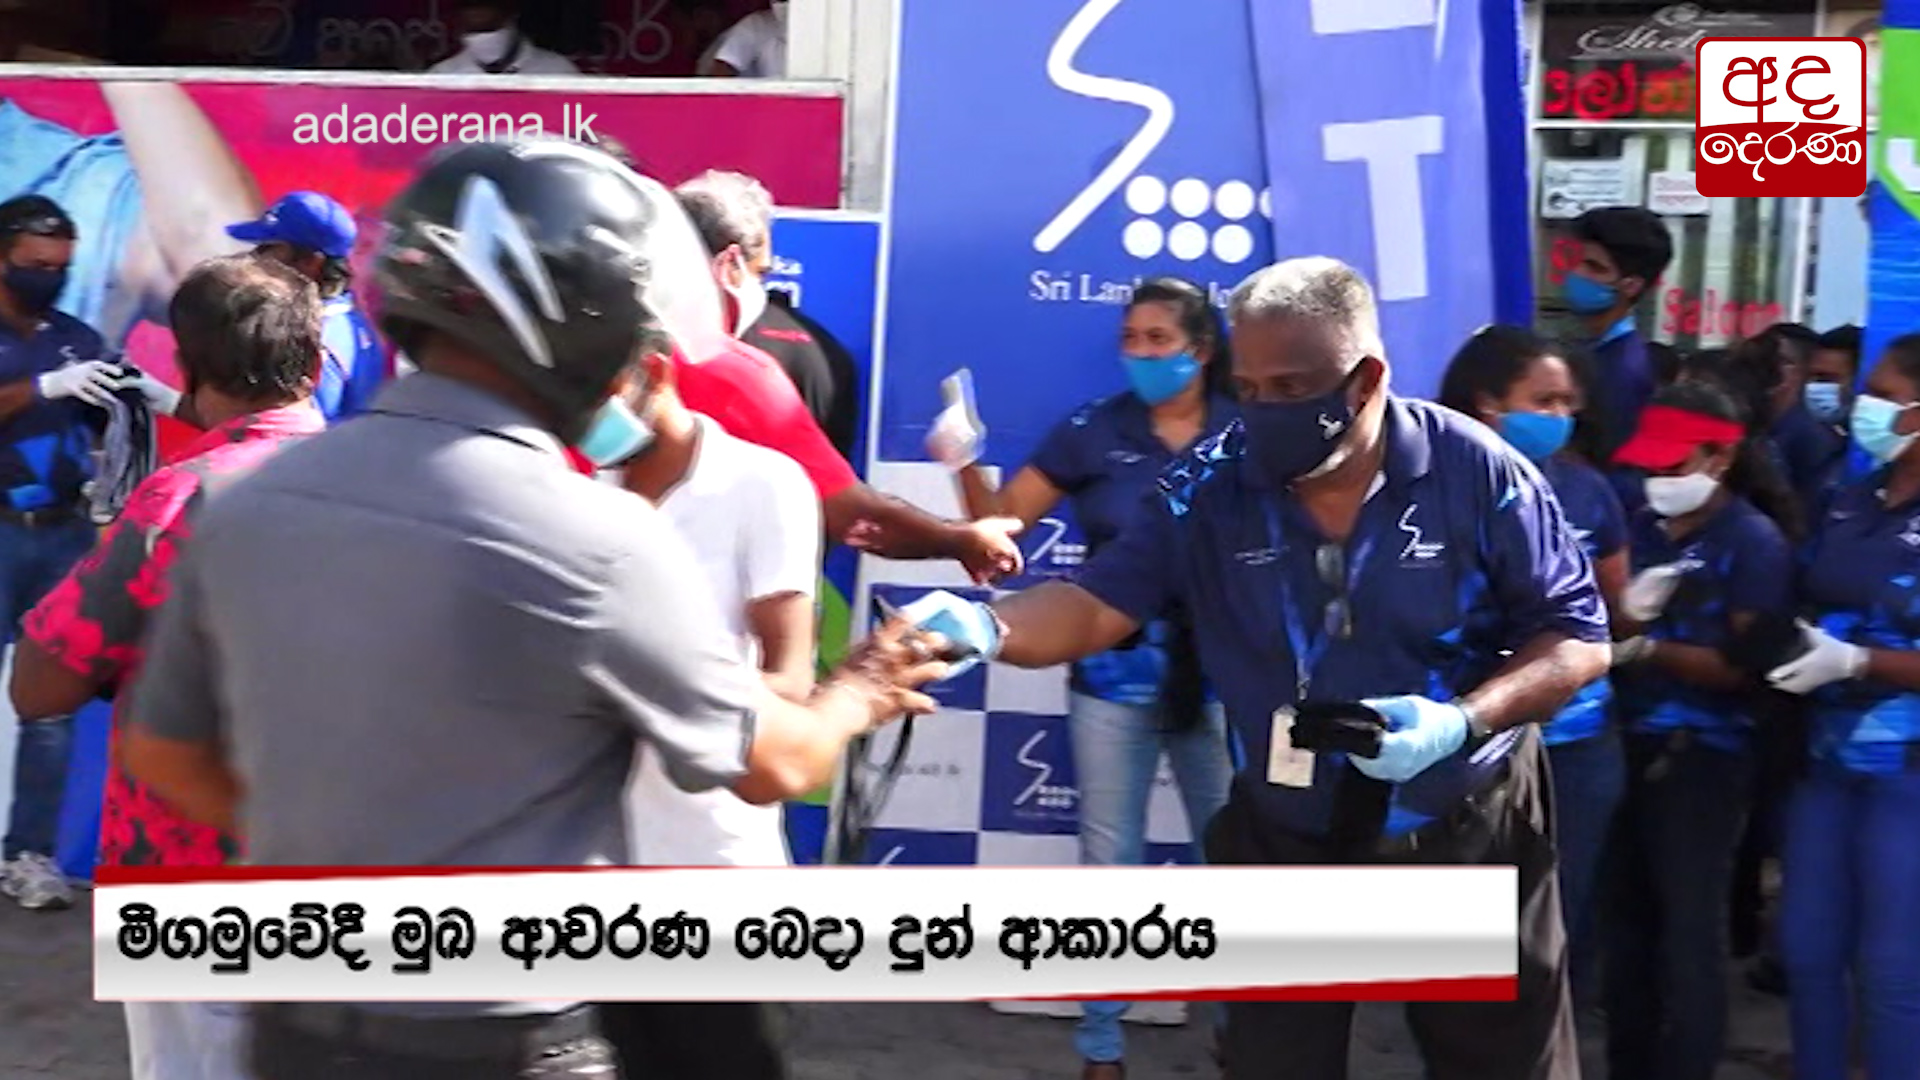 Manusath Derana distributed free face masks in Negombo